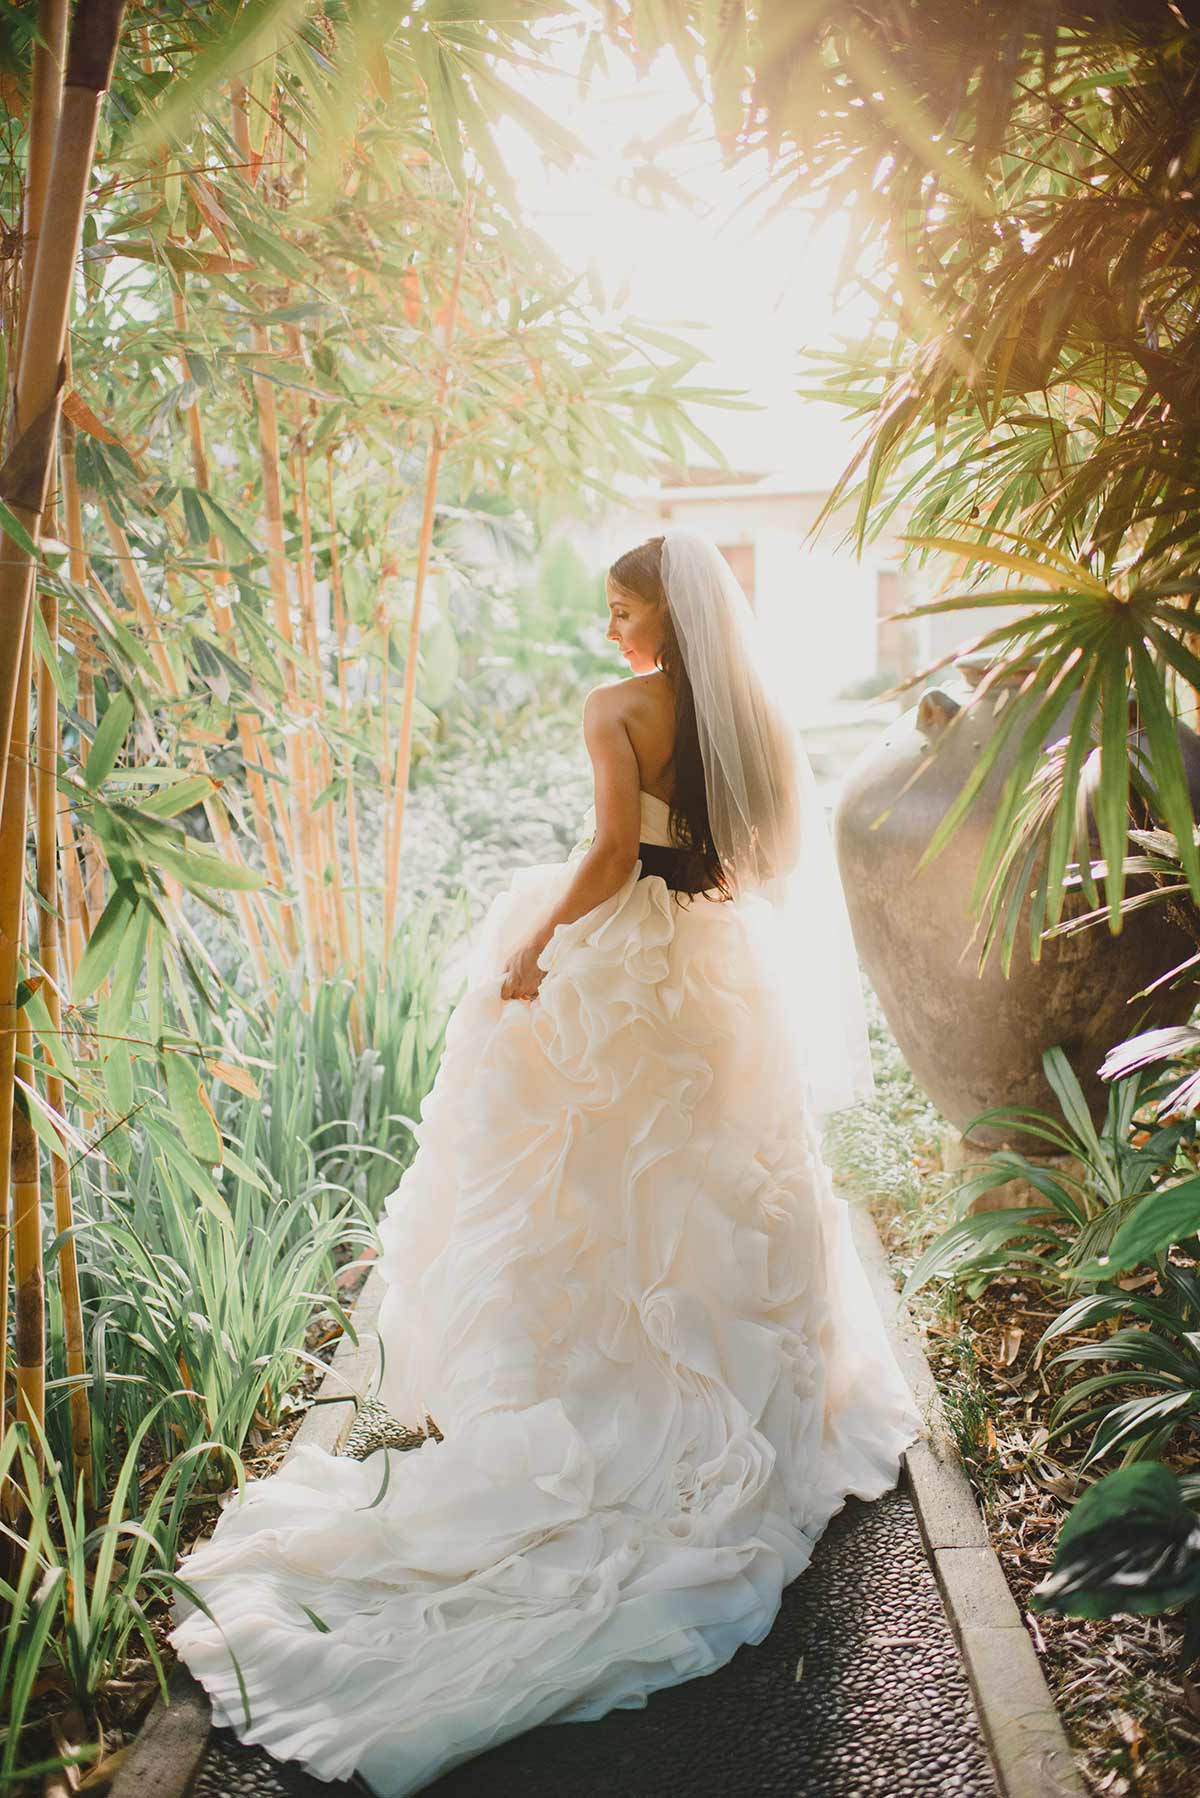 Real Bride Bec wears Sottero and Midgley gown in Bali wedding, gown from Raffaele Ciuca Bridal